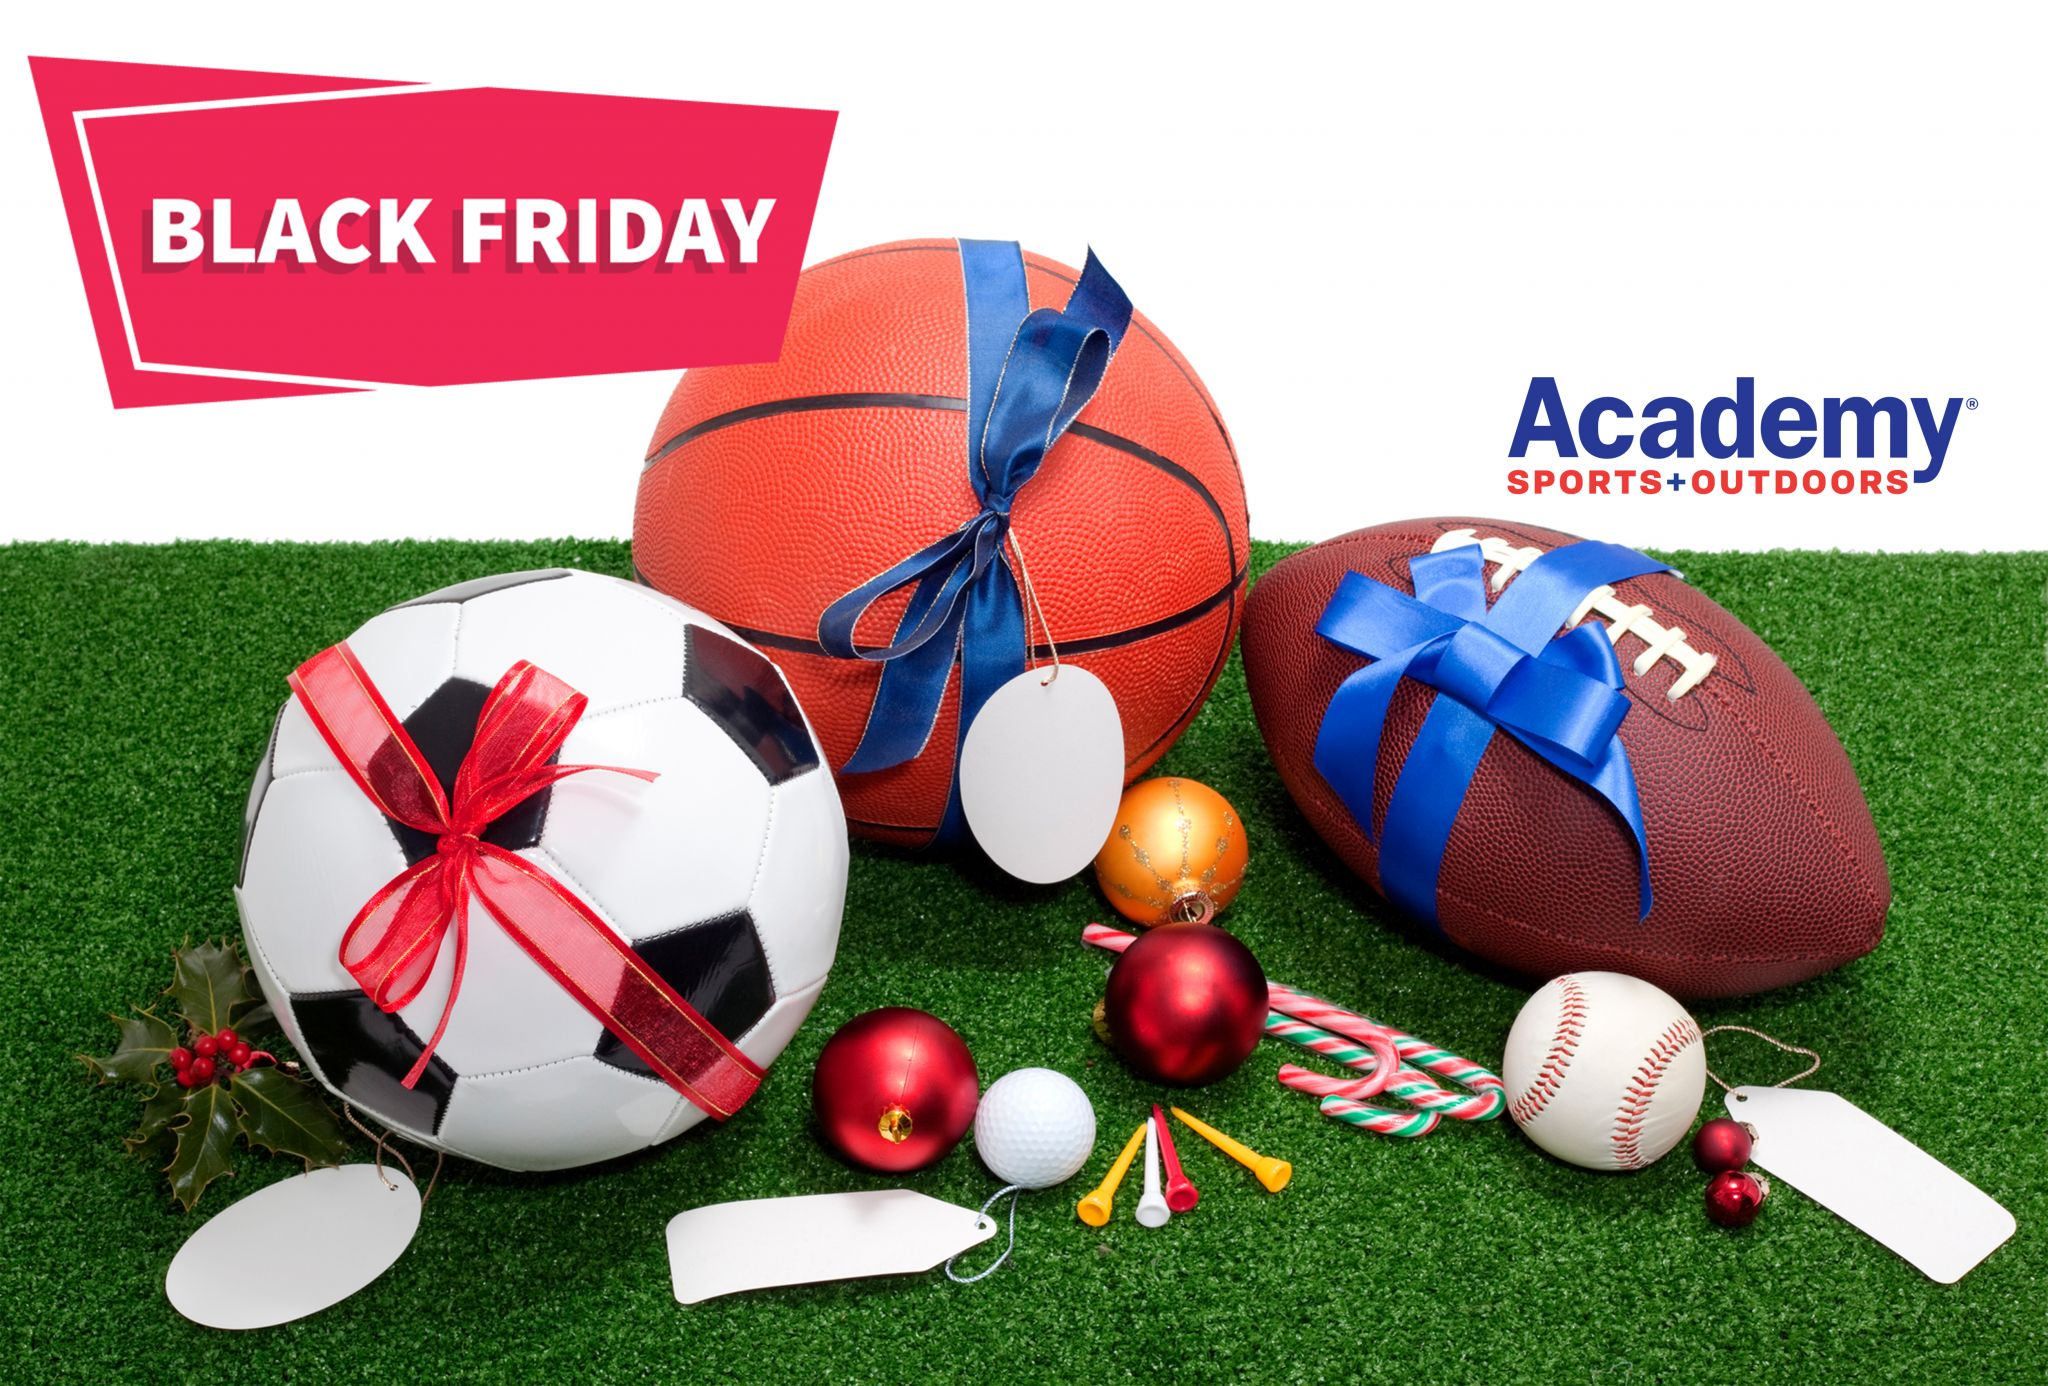 Shop the top Black Friday deals at Academy Sports+Outdoors now until November 28.